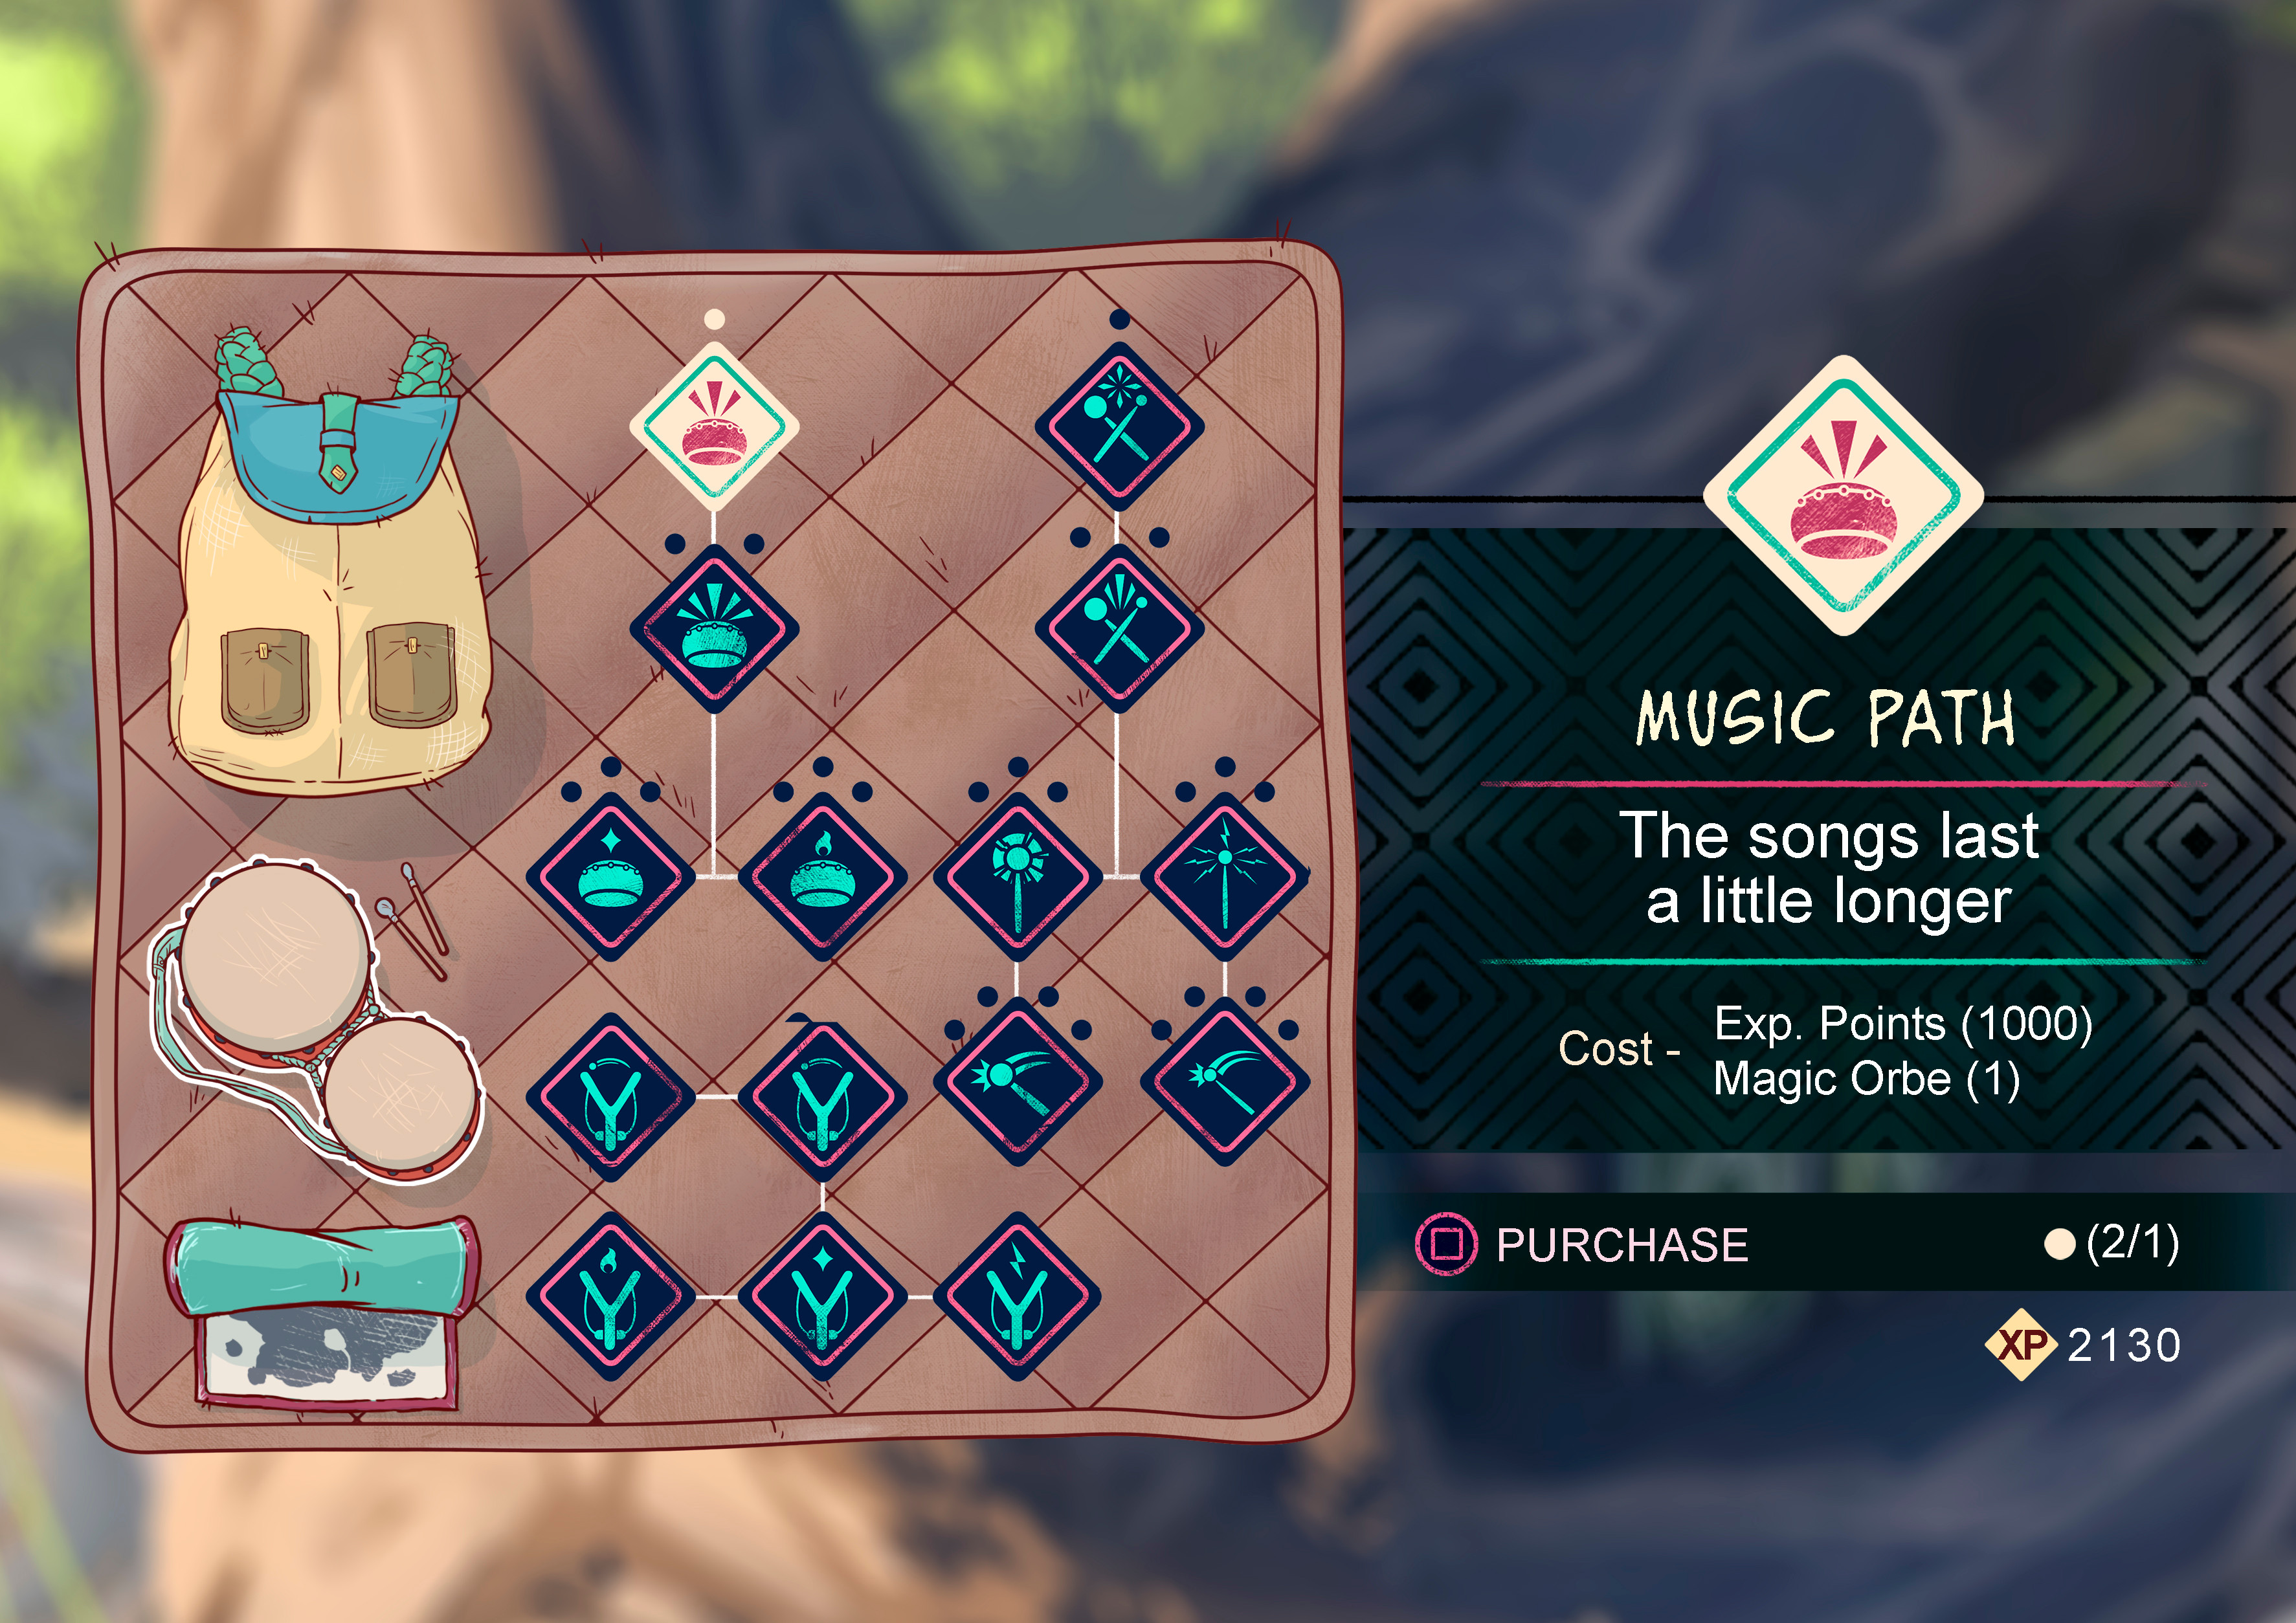 I imagined a gameplay mechanic were different combinations of sounds, using the drums of the character, would build a  specific melody with different properties  something similar to the special powers from Patapon